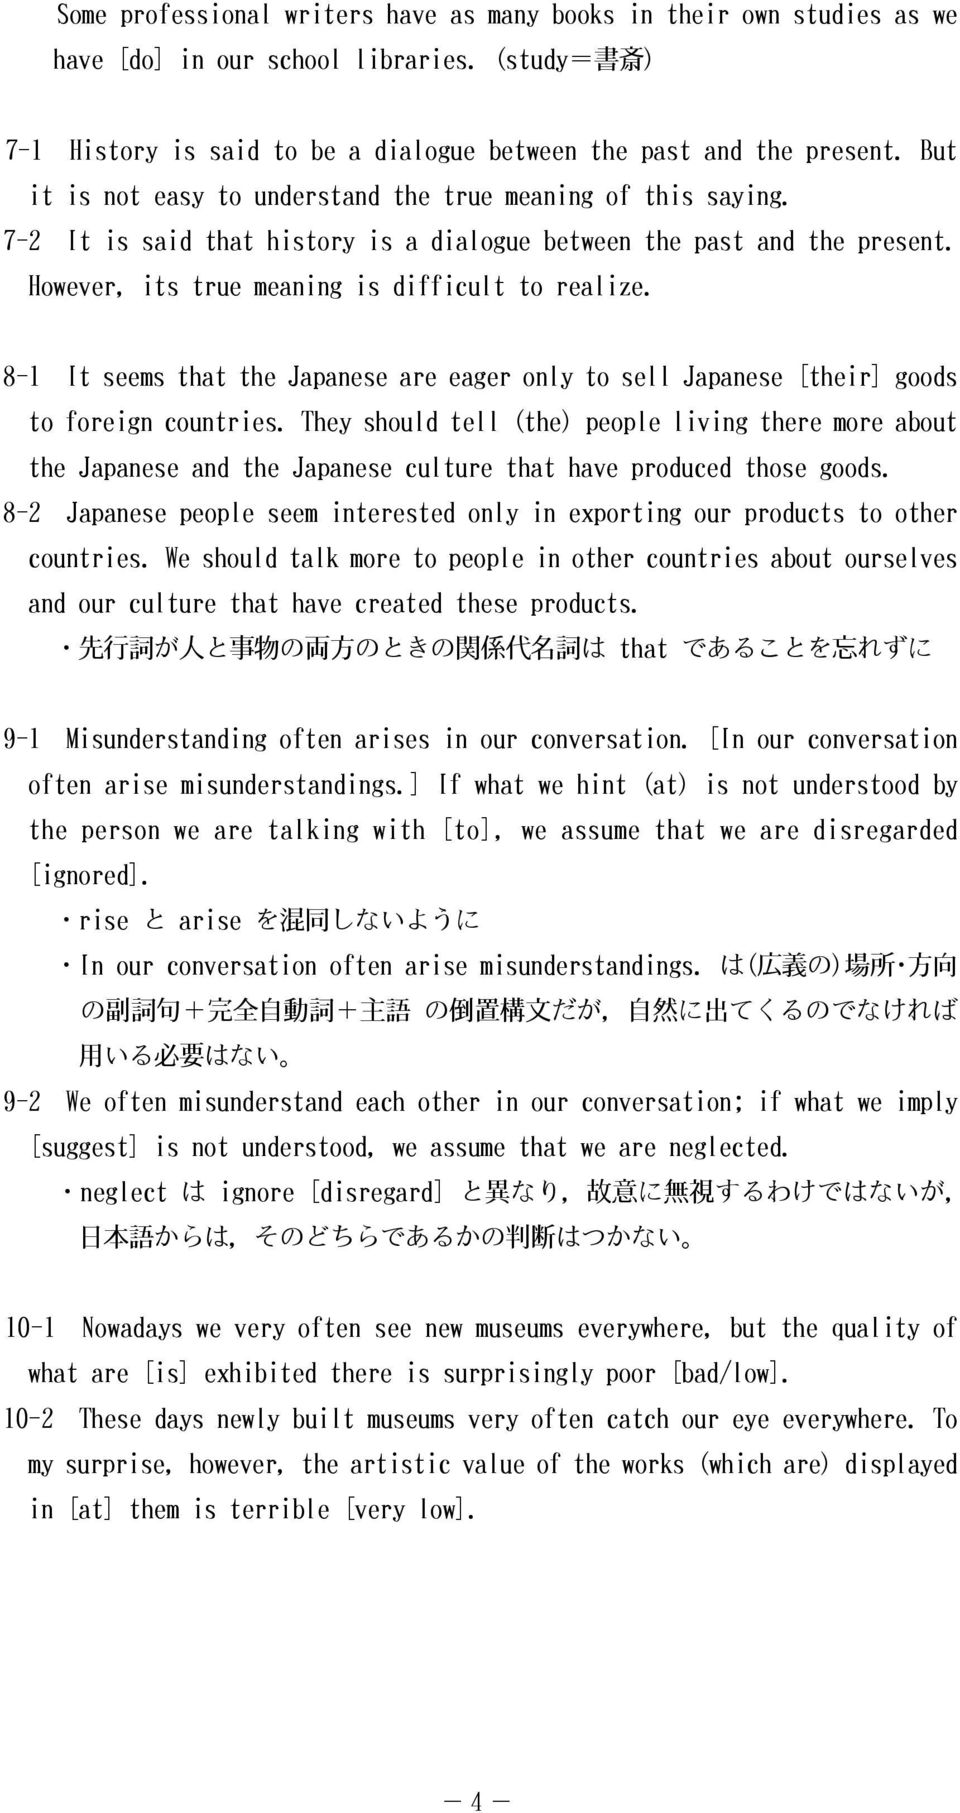 8-1 It seems that the Japanese are eager only to sell Japanese [their] goods to foreign countries.